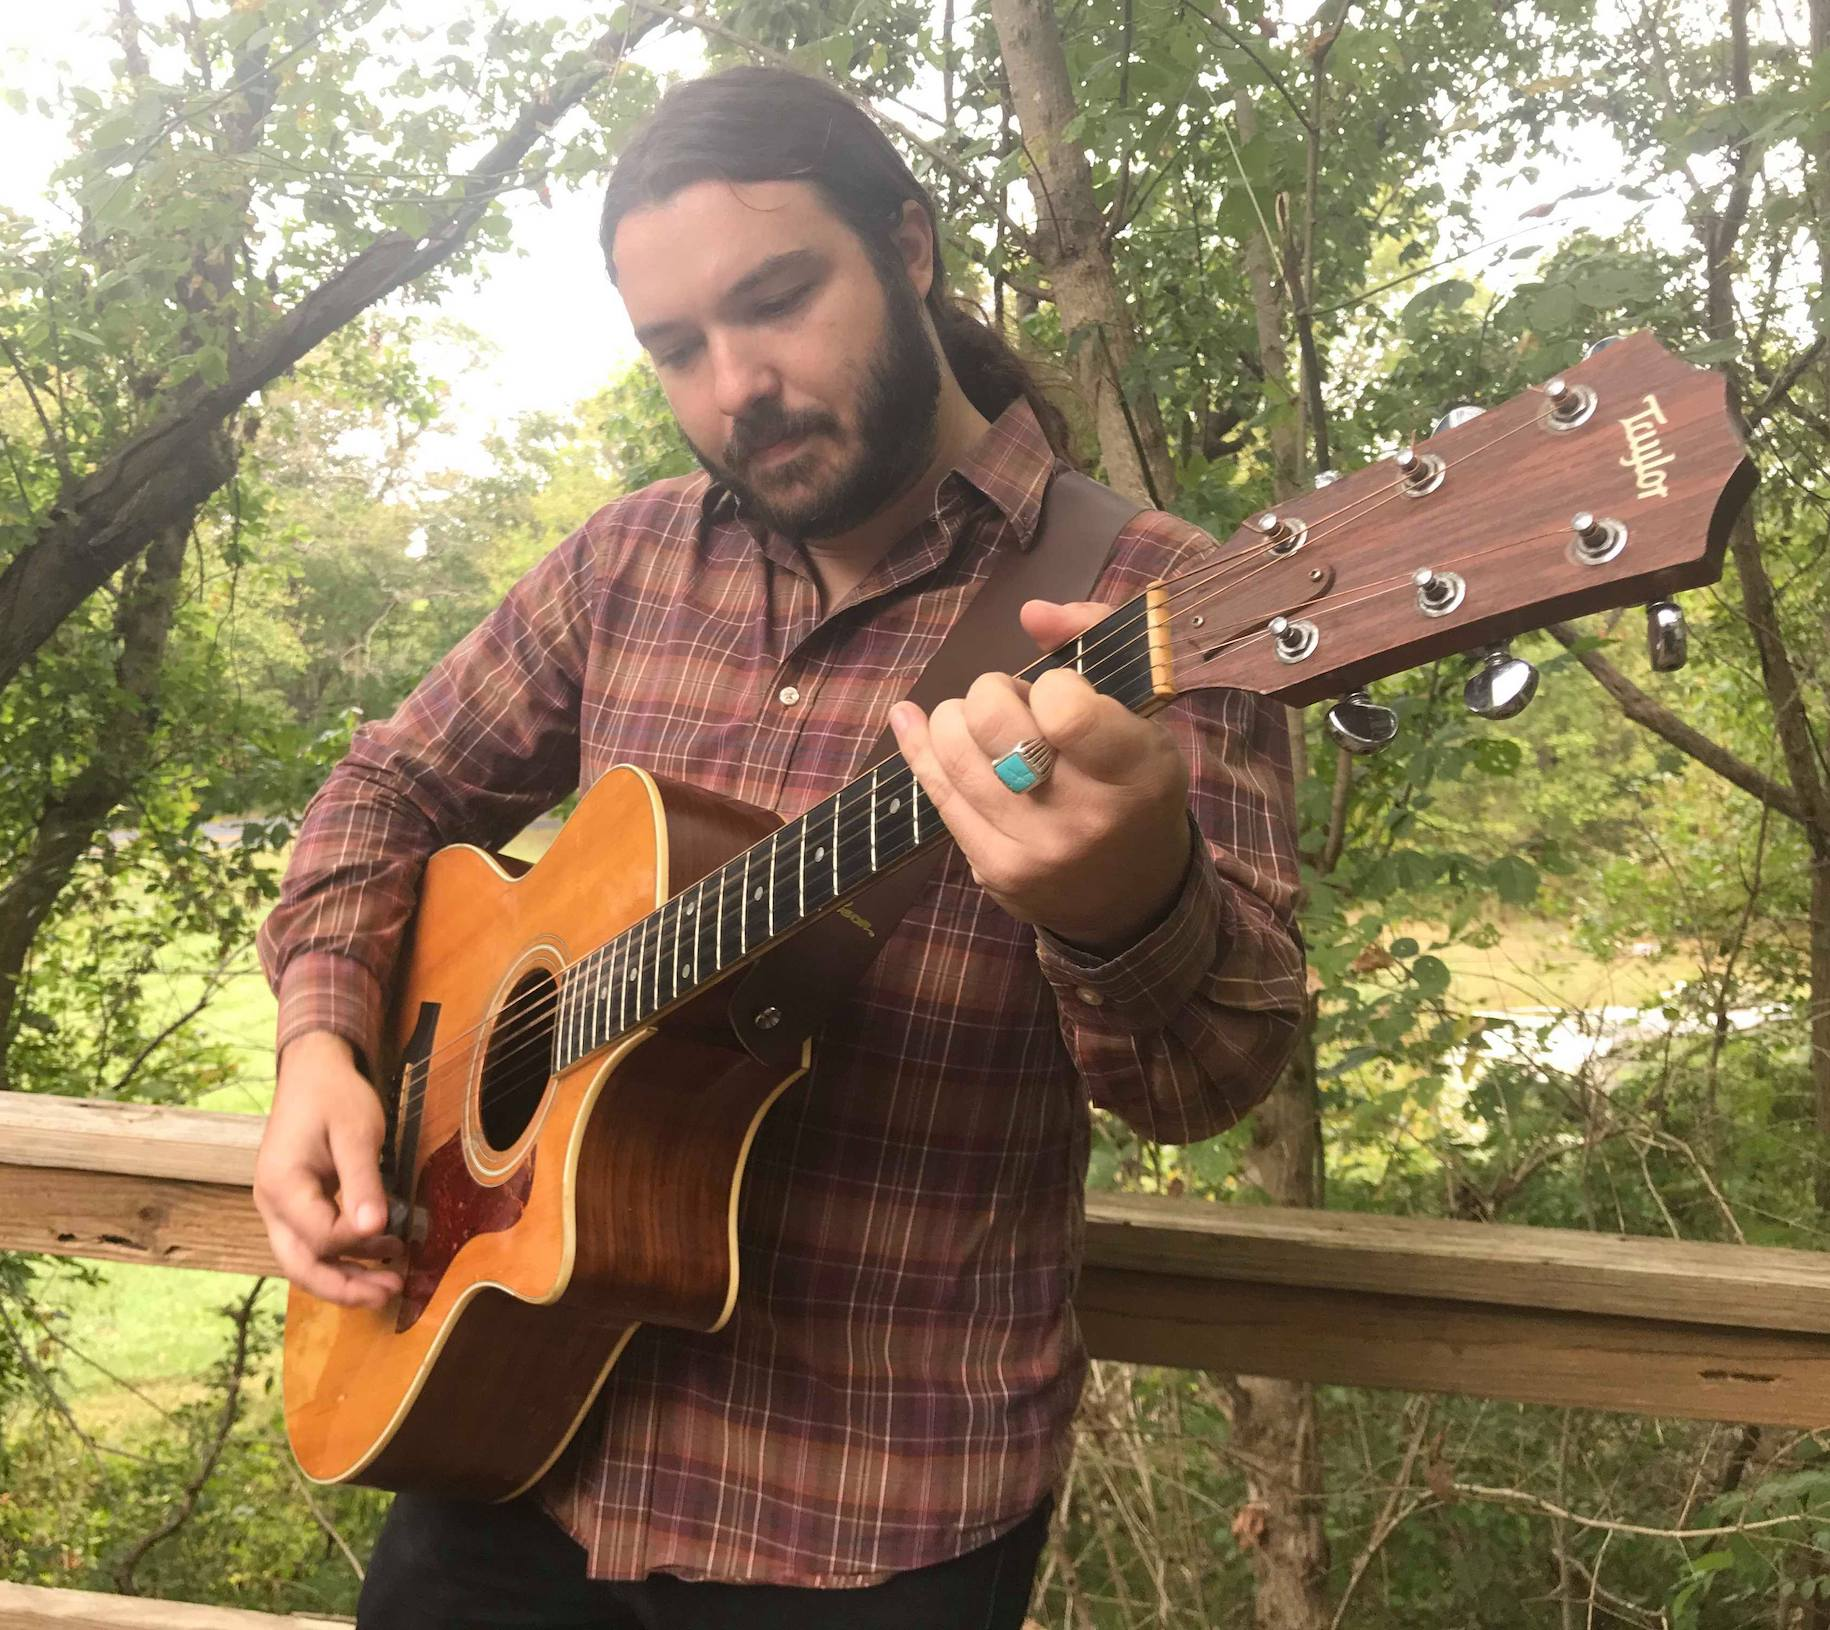 derek kretzer playing guitar outside in nature